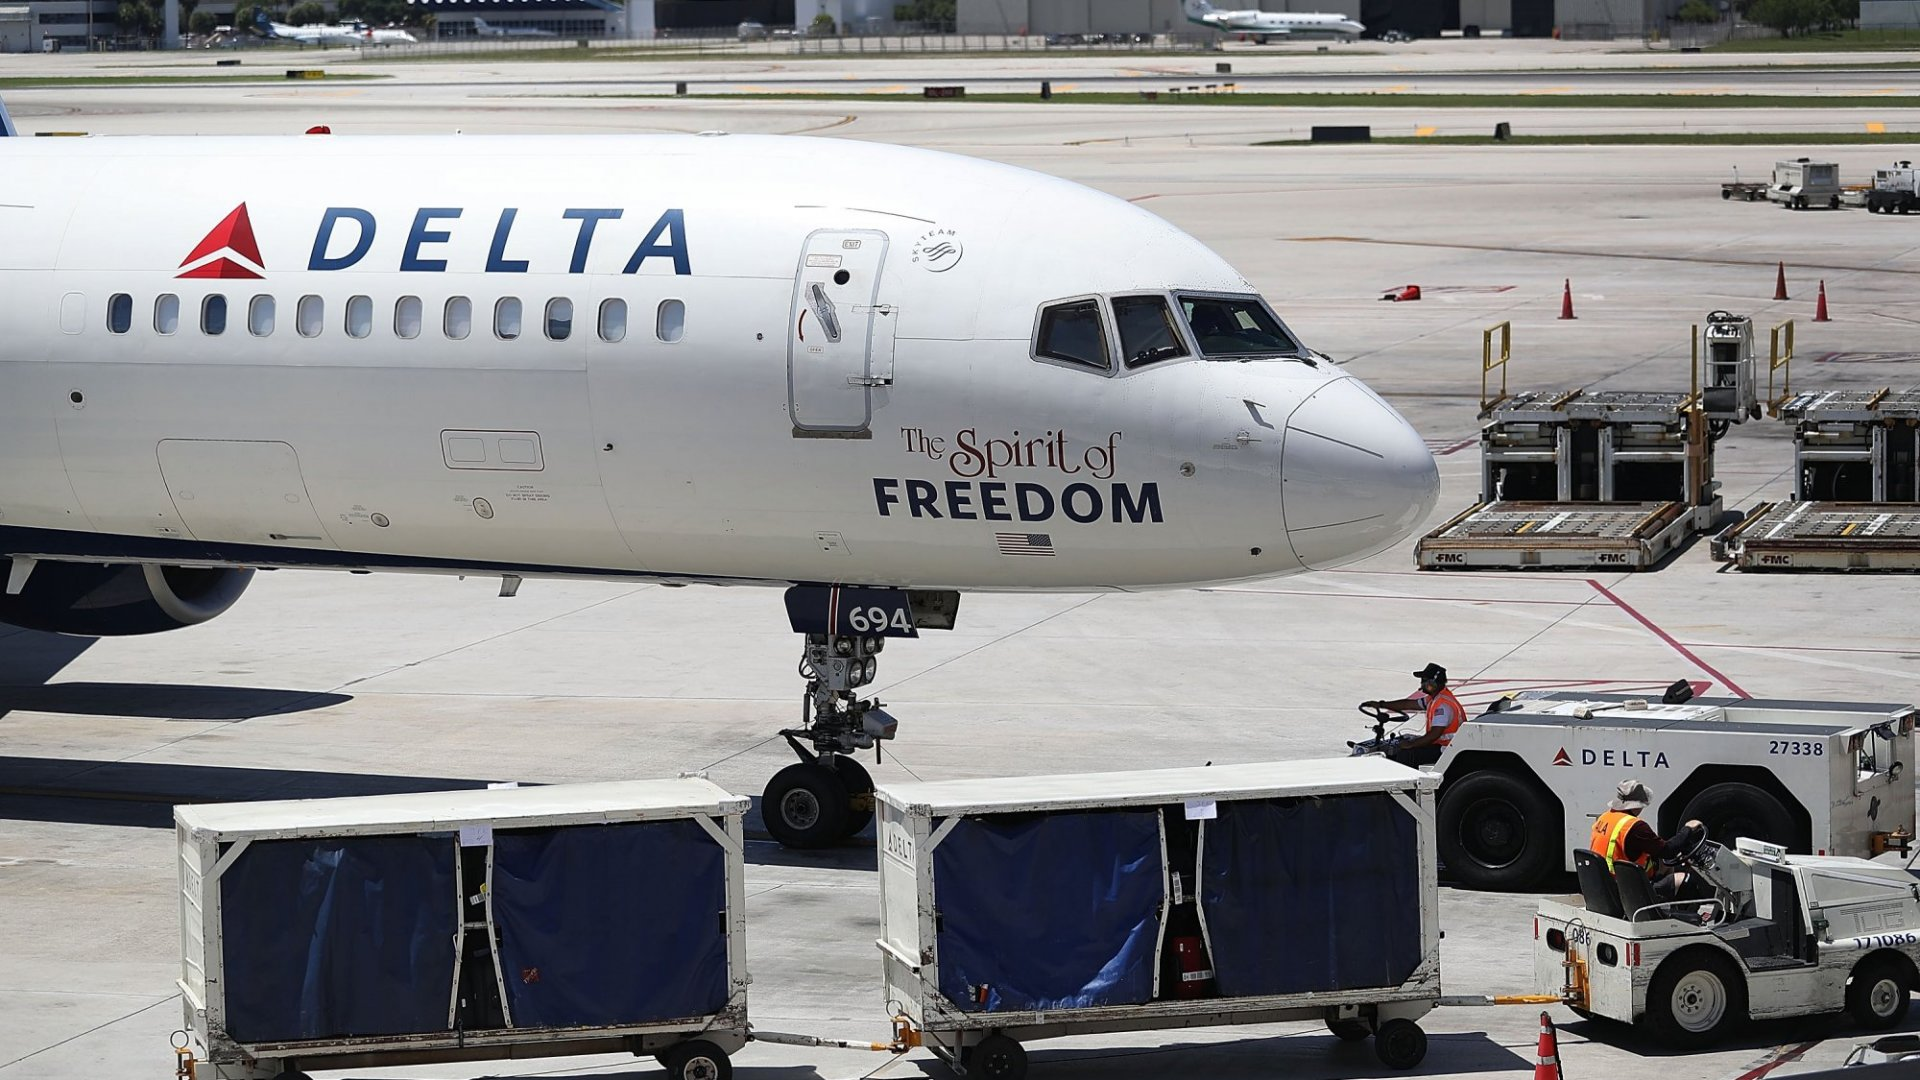 The Spirit of Freedom? Is that what Delta passengers feel?